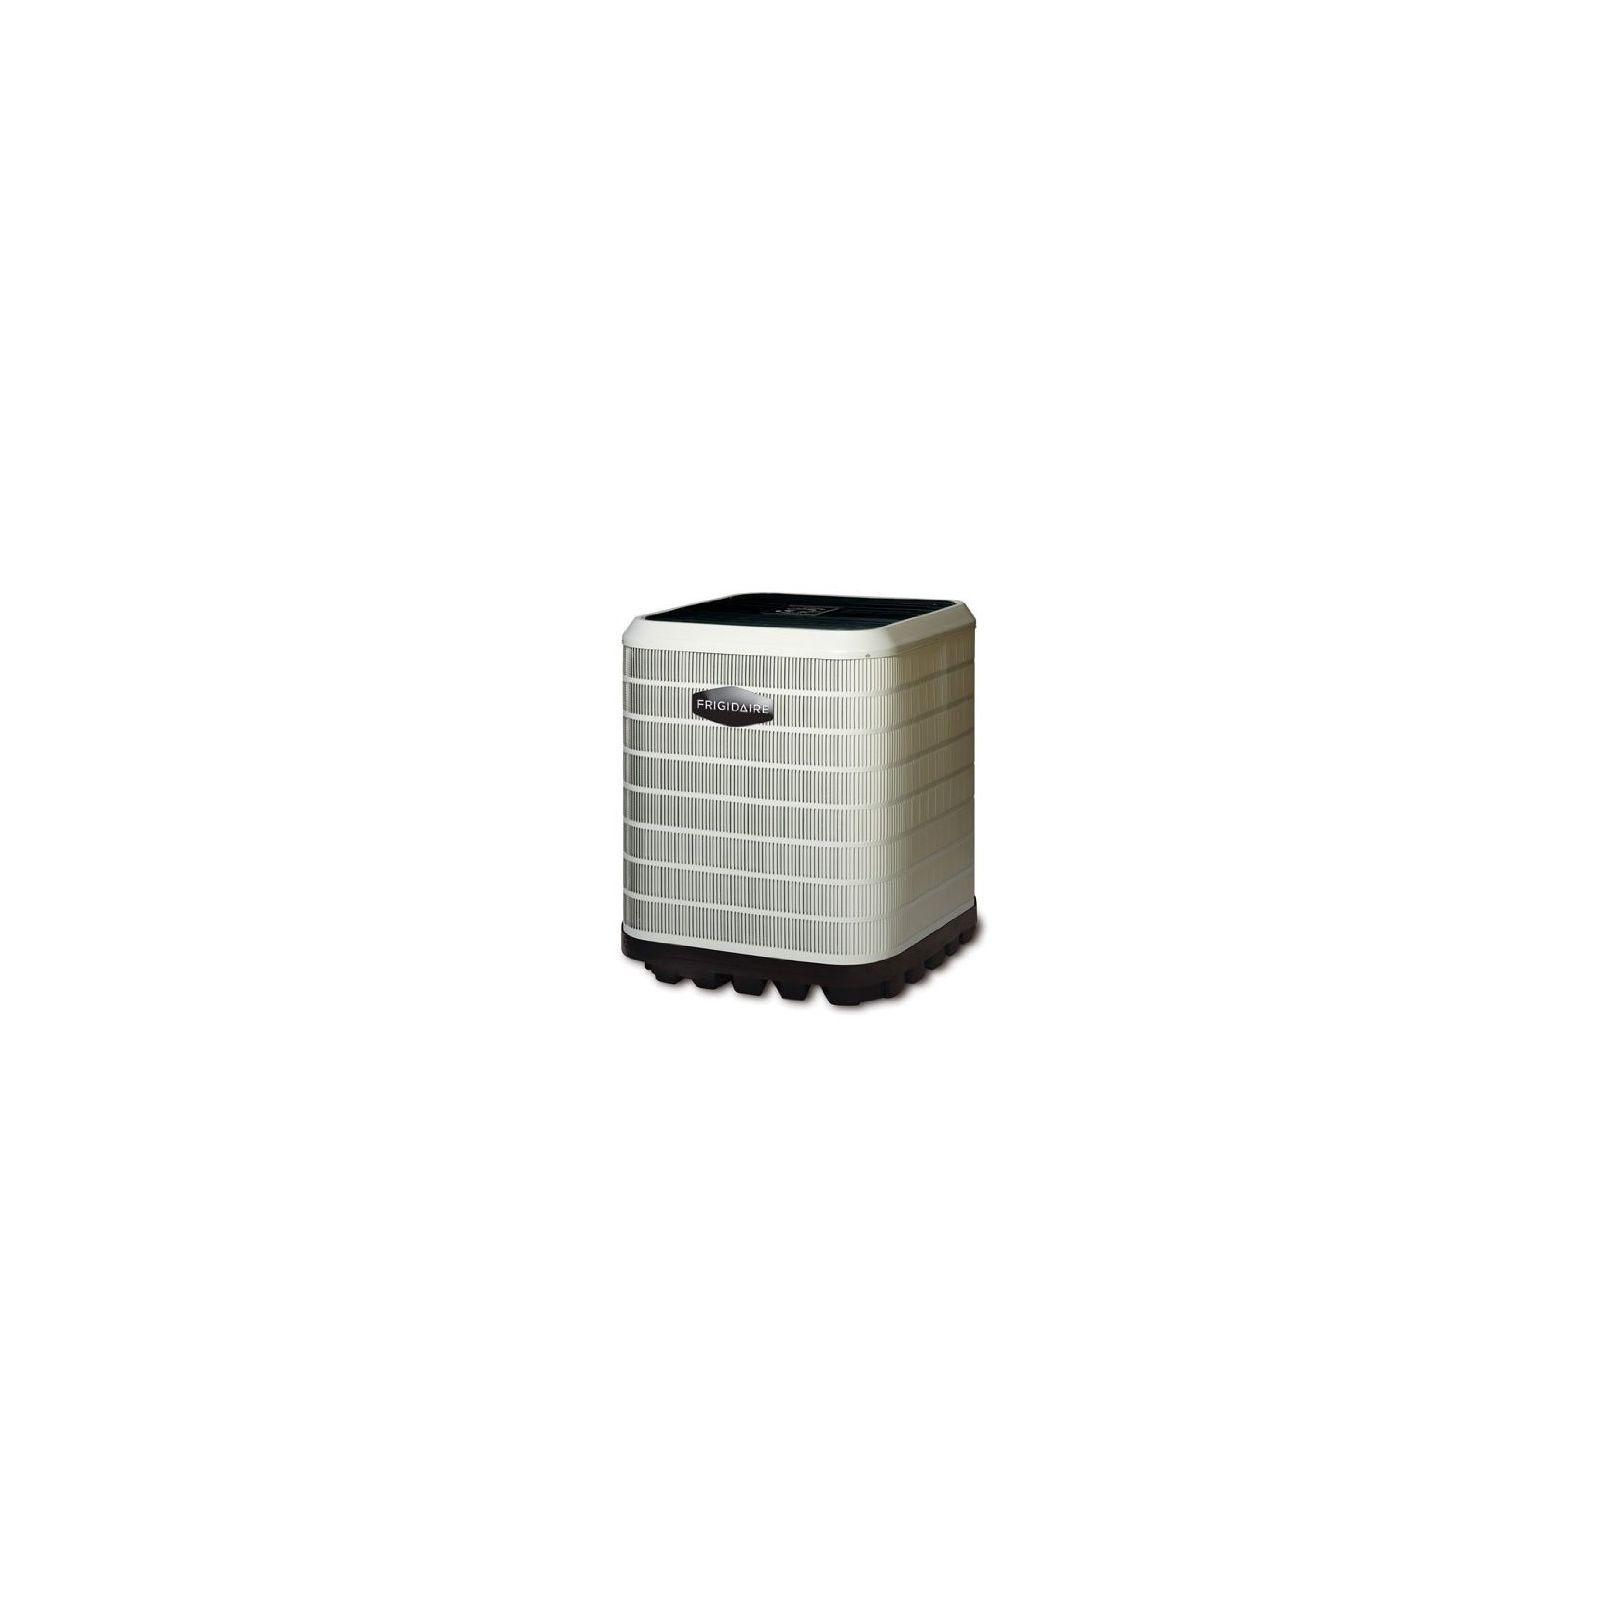 Frigidaire 919667EA - ET4BF-024KB - 2 Ton 16 SEER Extra High Efficiency Heat Pump, R410A